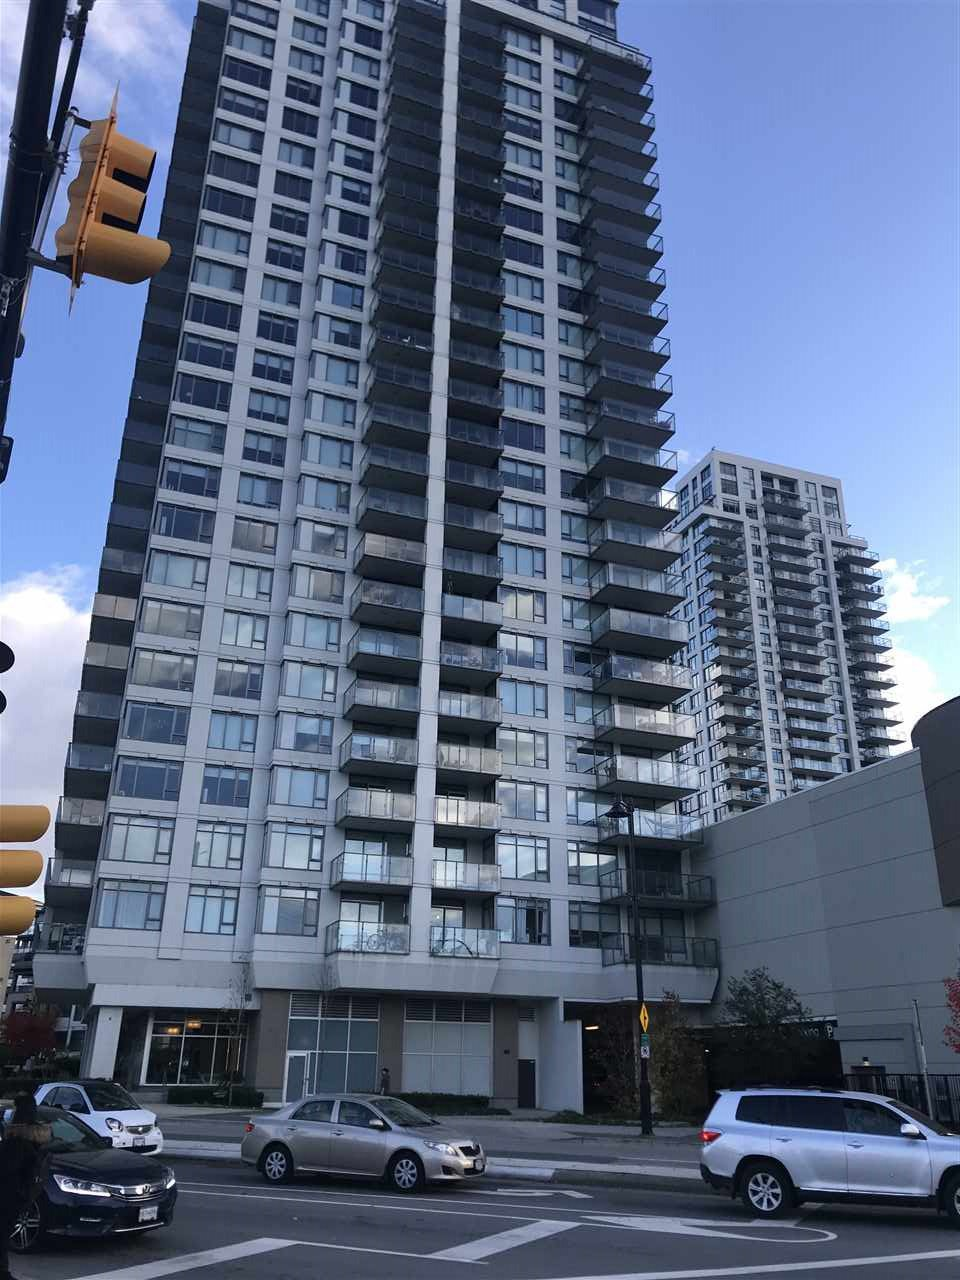 Main Photo: 506 570 EMERSON Street in Coquitlam: Coquitlam West Condo for sale : MLS®# R2515450